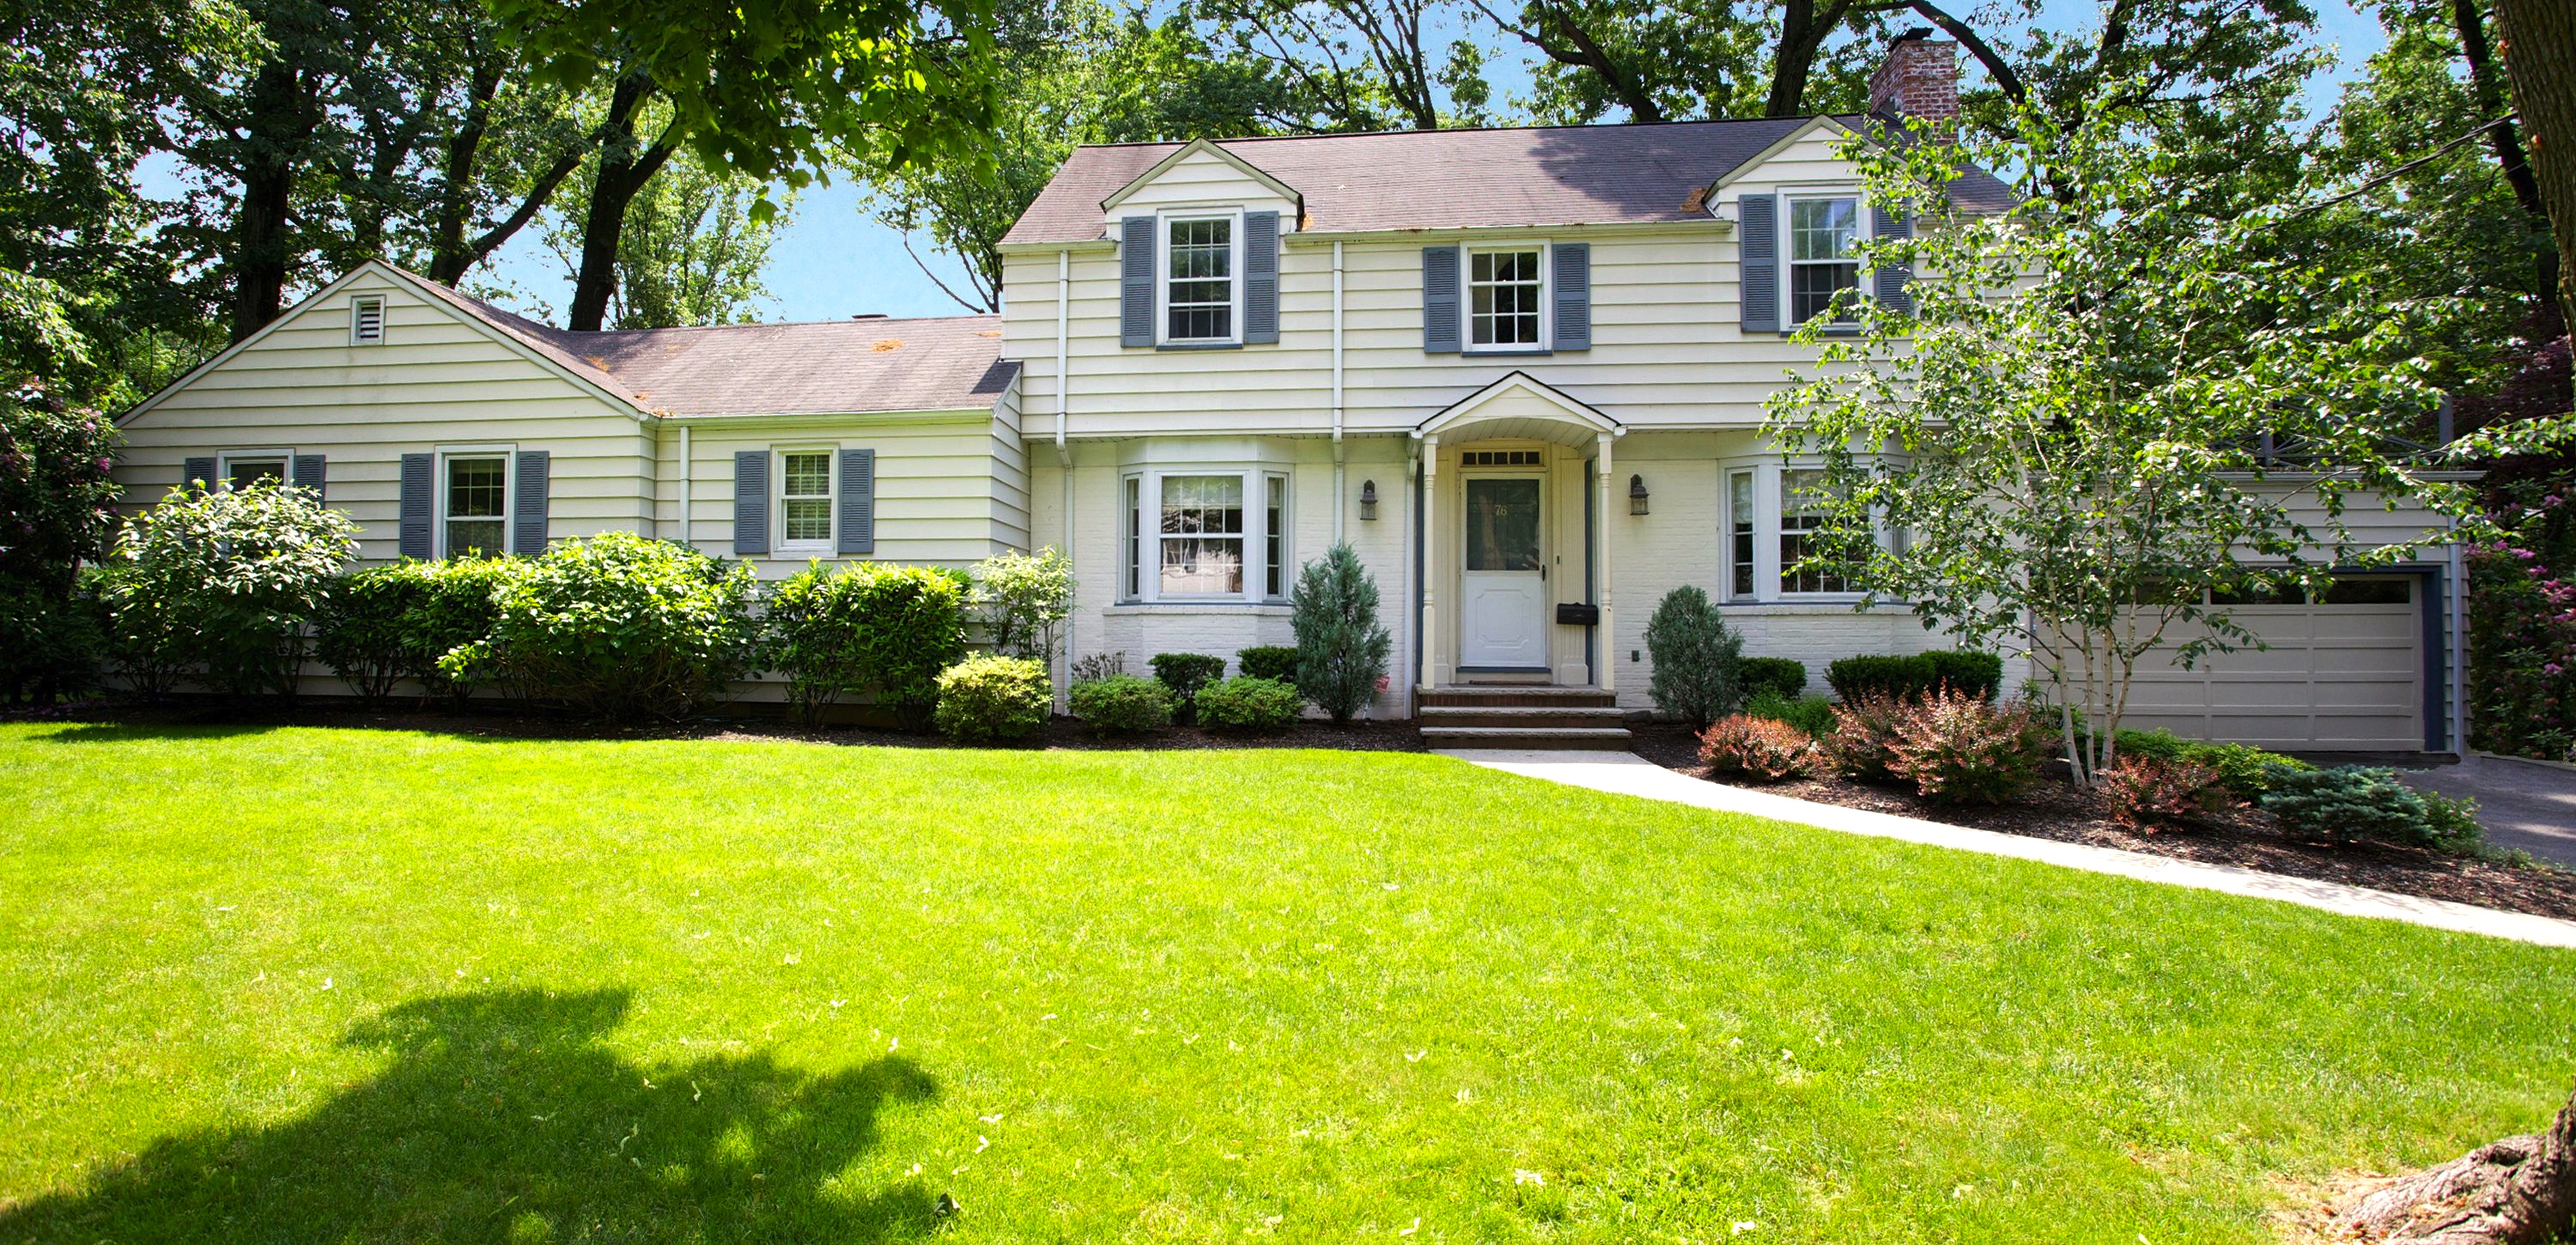 Tenafly Nj Realtor Josh Baris Luxury Real Estate Amp Homes